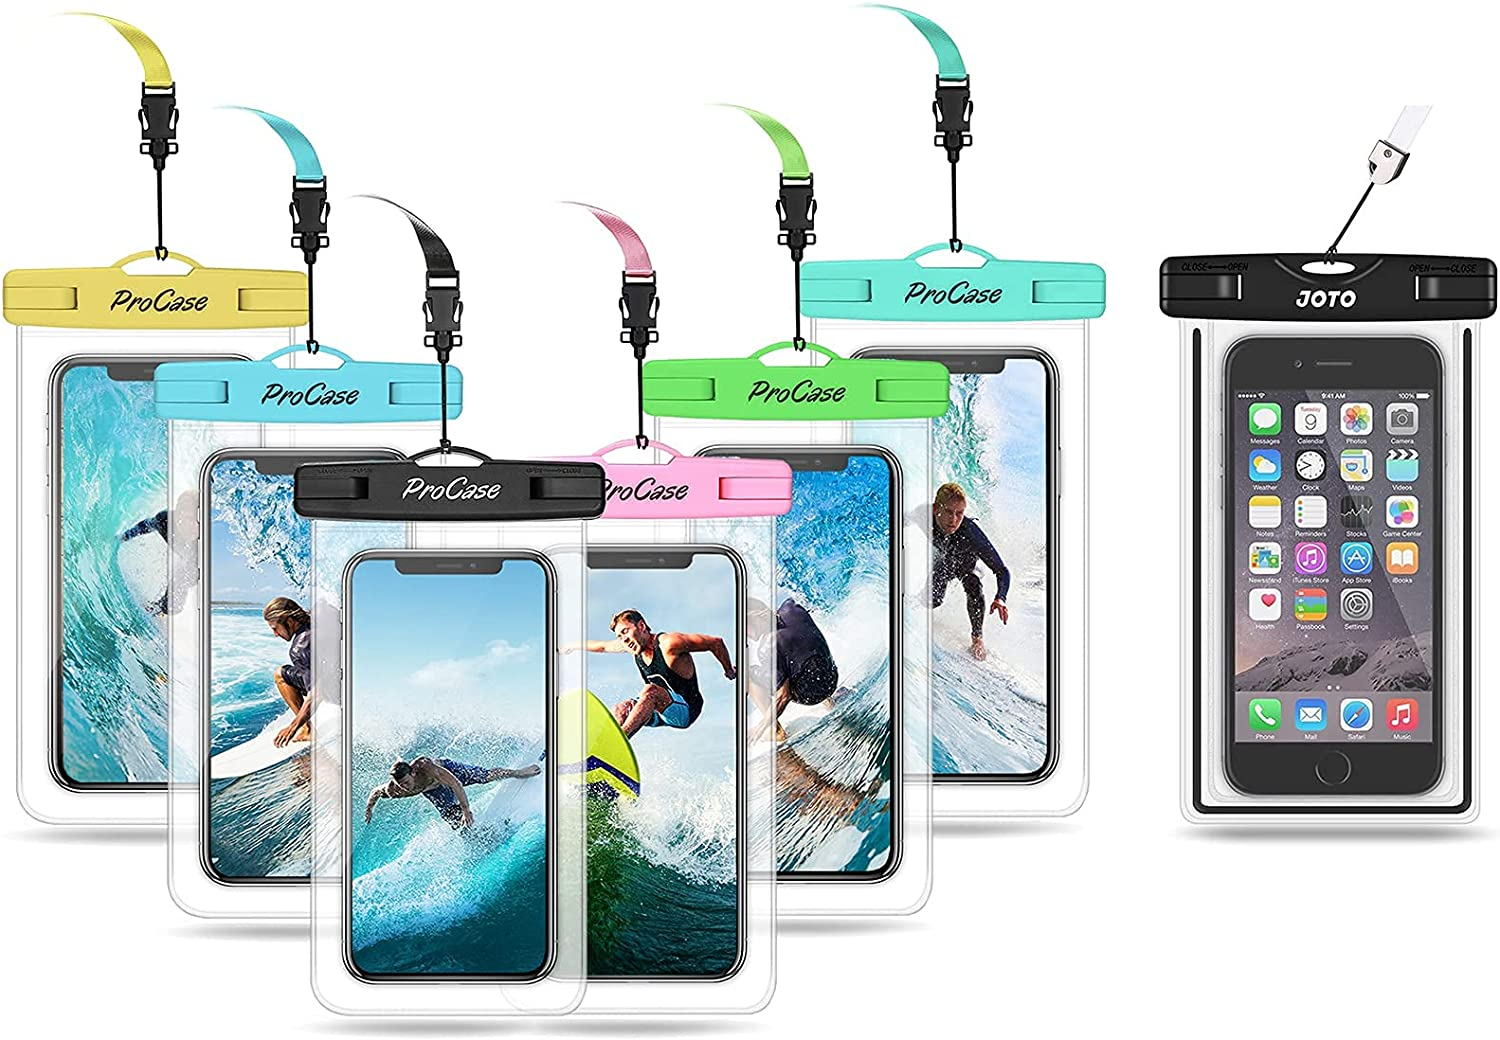 ProCase (6 Pack) Universal Waterproof Pouch Cellphone Dry Bag Bundle with JOTO Universal Waterproof Case for Phones up to 7.0